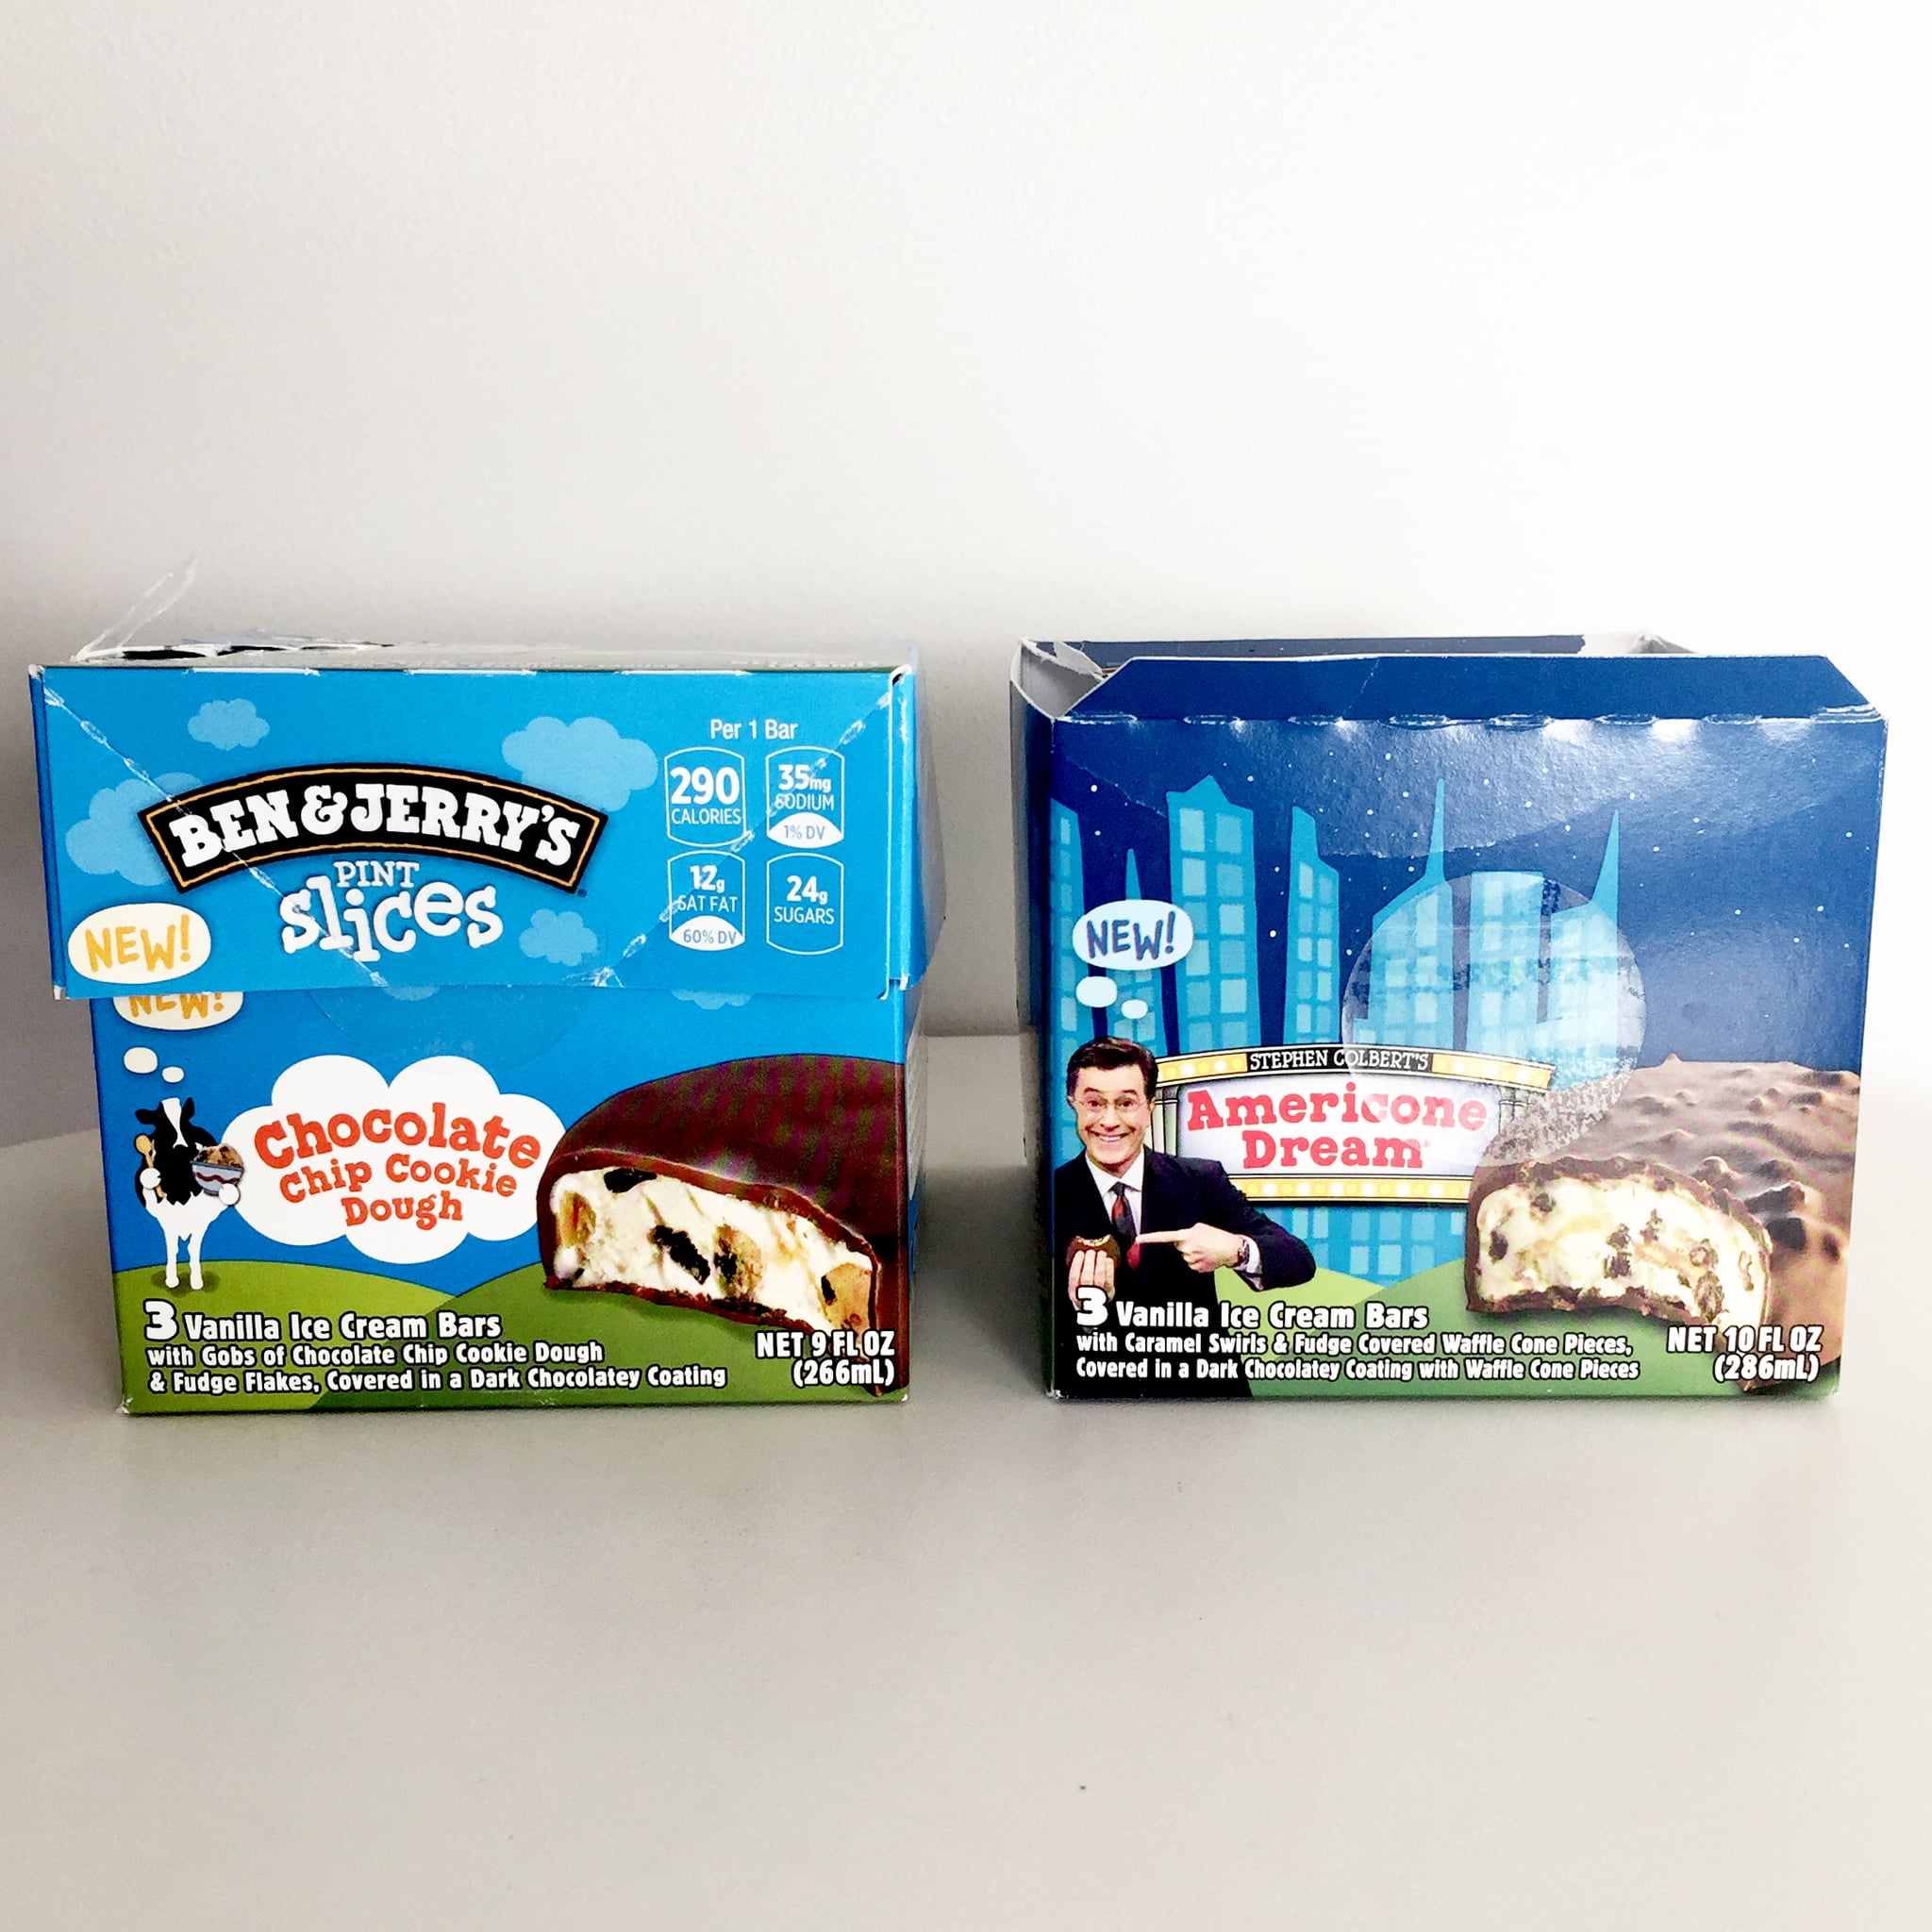 Ben Jerry S Pint Slices In Americone Dream The Best New Grocery Store Snacks Of 2017 Popsugar Food Photo 67 Calories get deducted if they're for. pint slices in americone dream